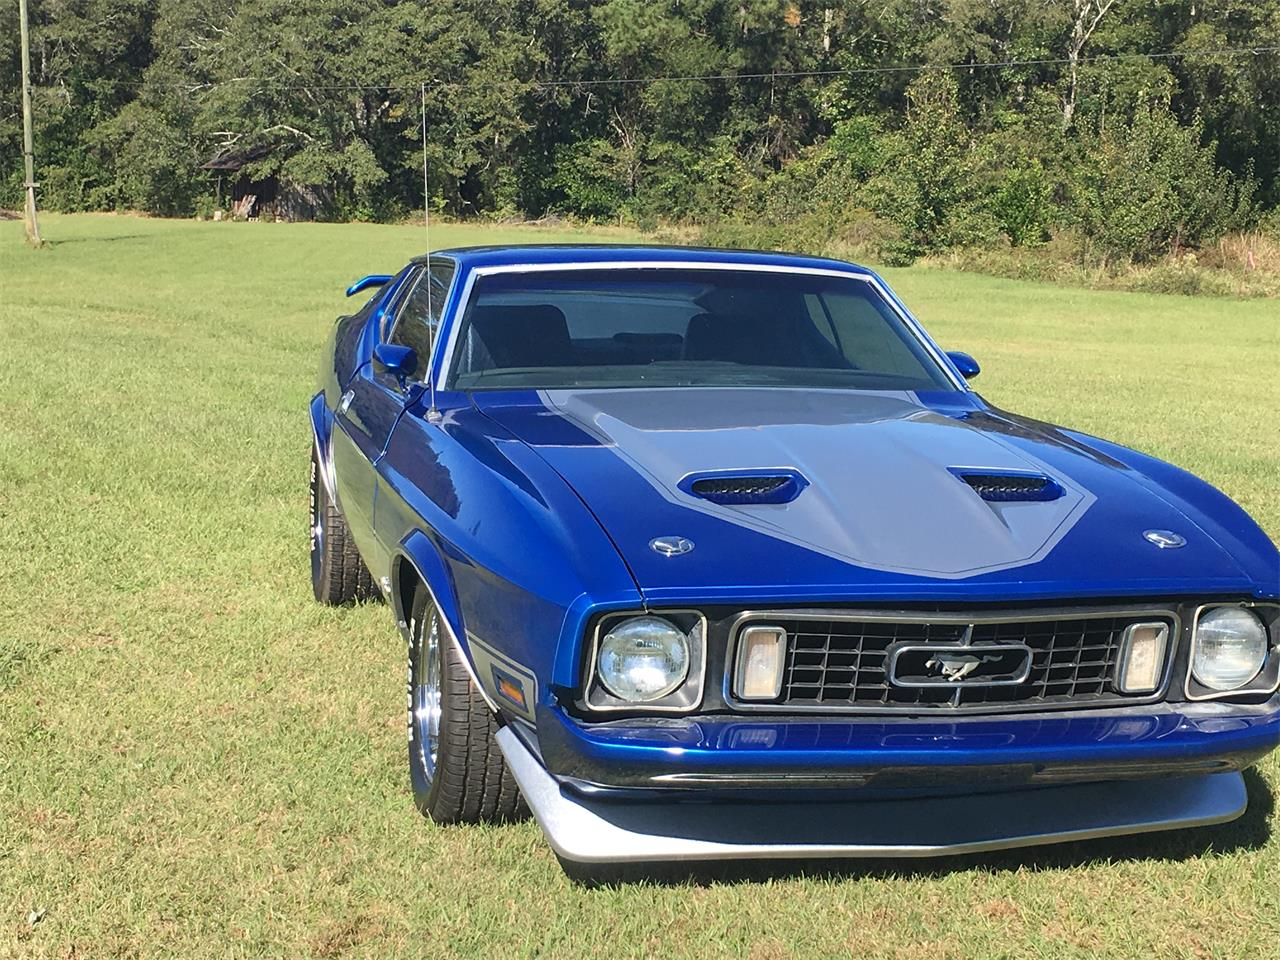 Large Picture of Classic 1973 Ford Mustang Mach 1 located in Alabama - M9HX